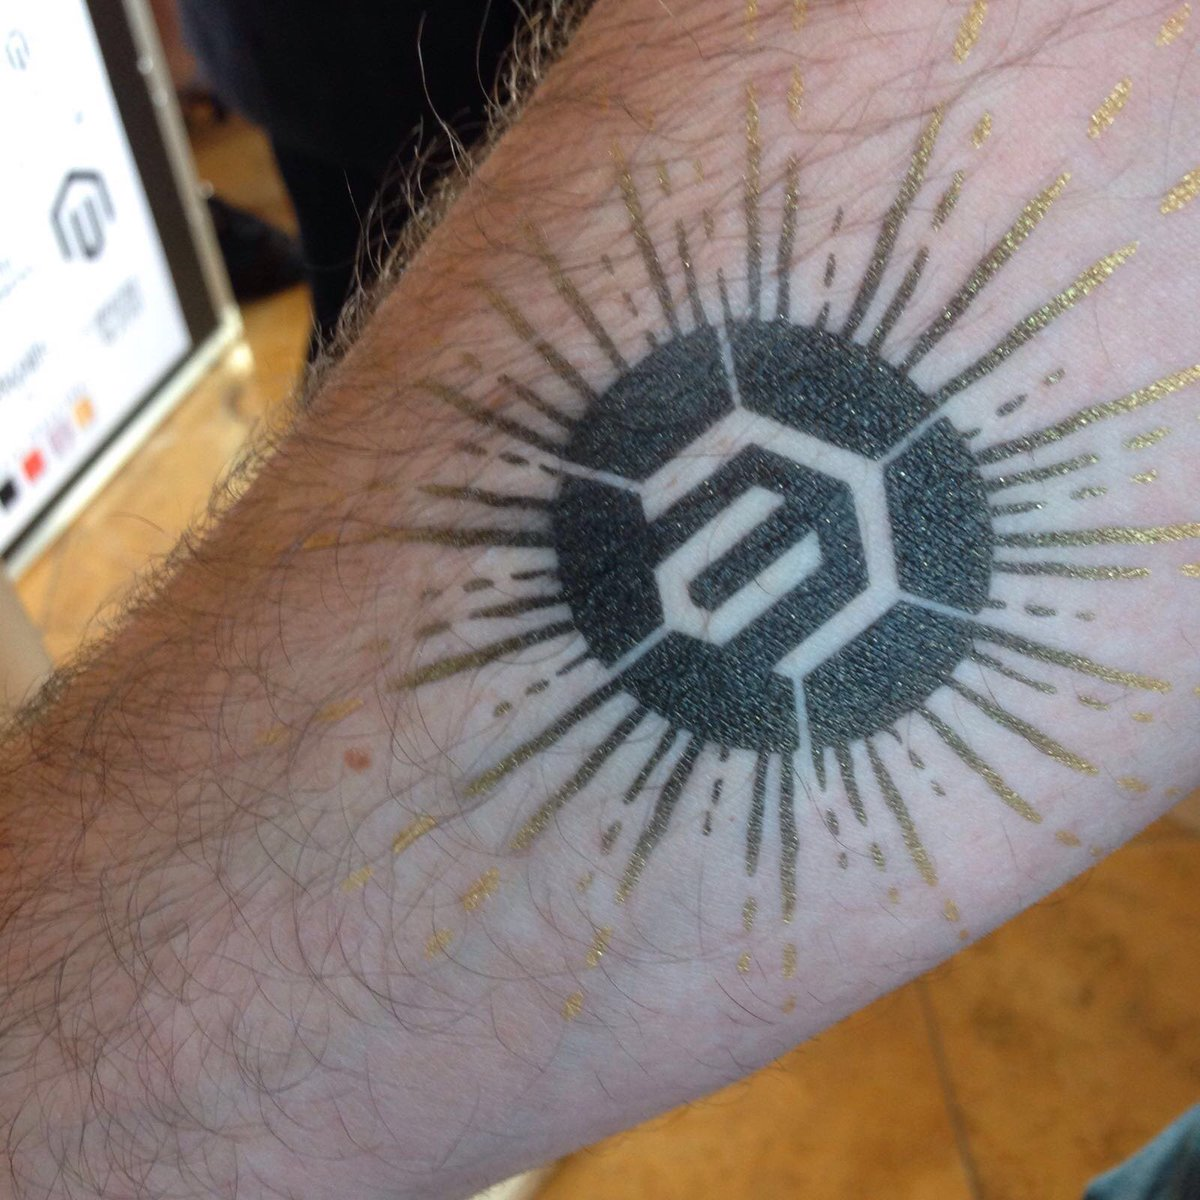 BrightpearlHQ: We love our new @magento tattoos! #MagentoImagine! Come say hello at booth #322! https://t.co/LRFmElsIoT